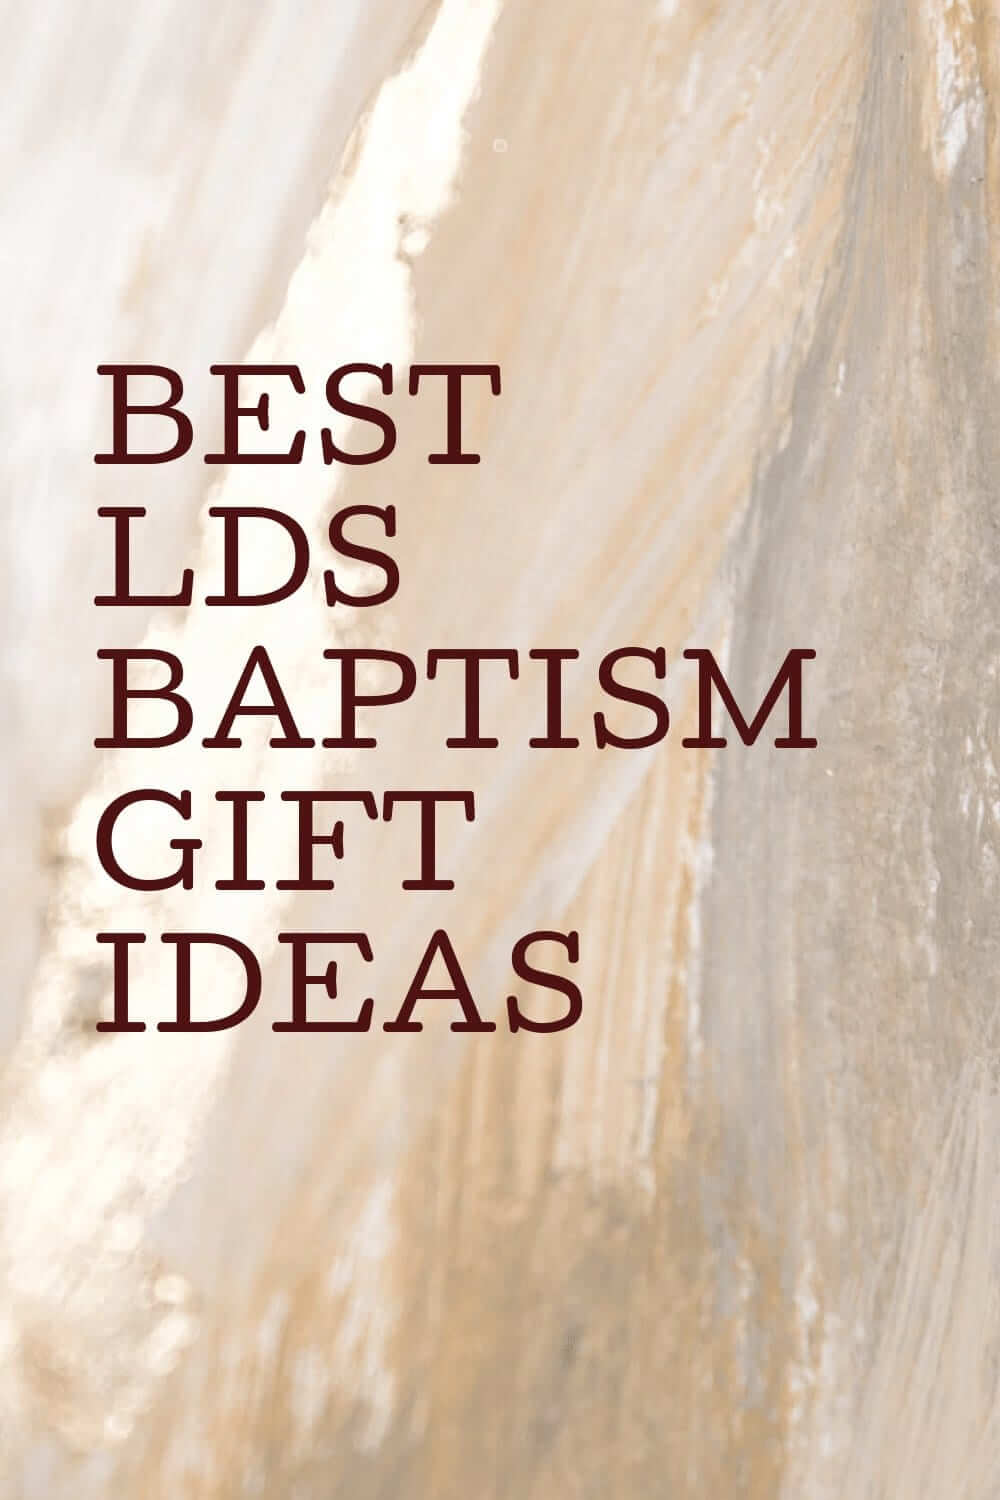 Best LDS Baptism Gifts